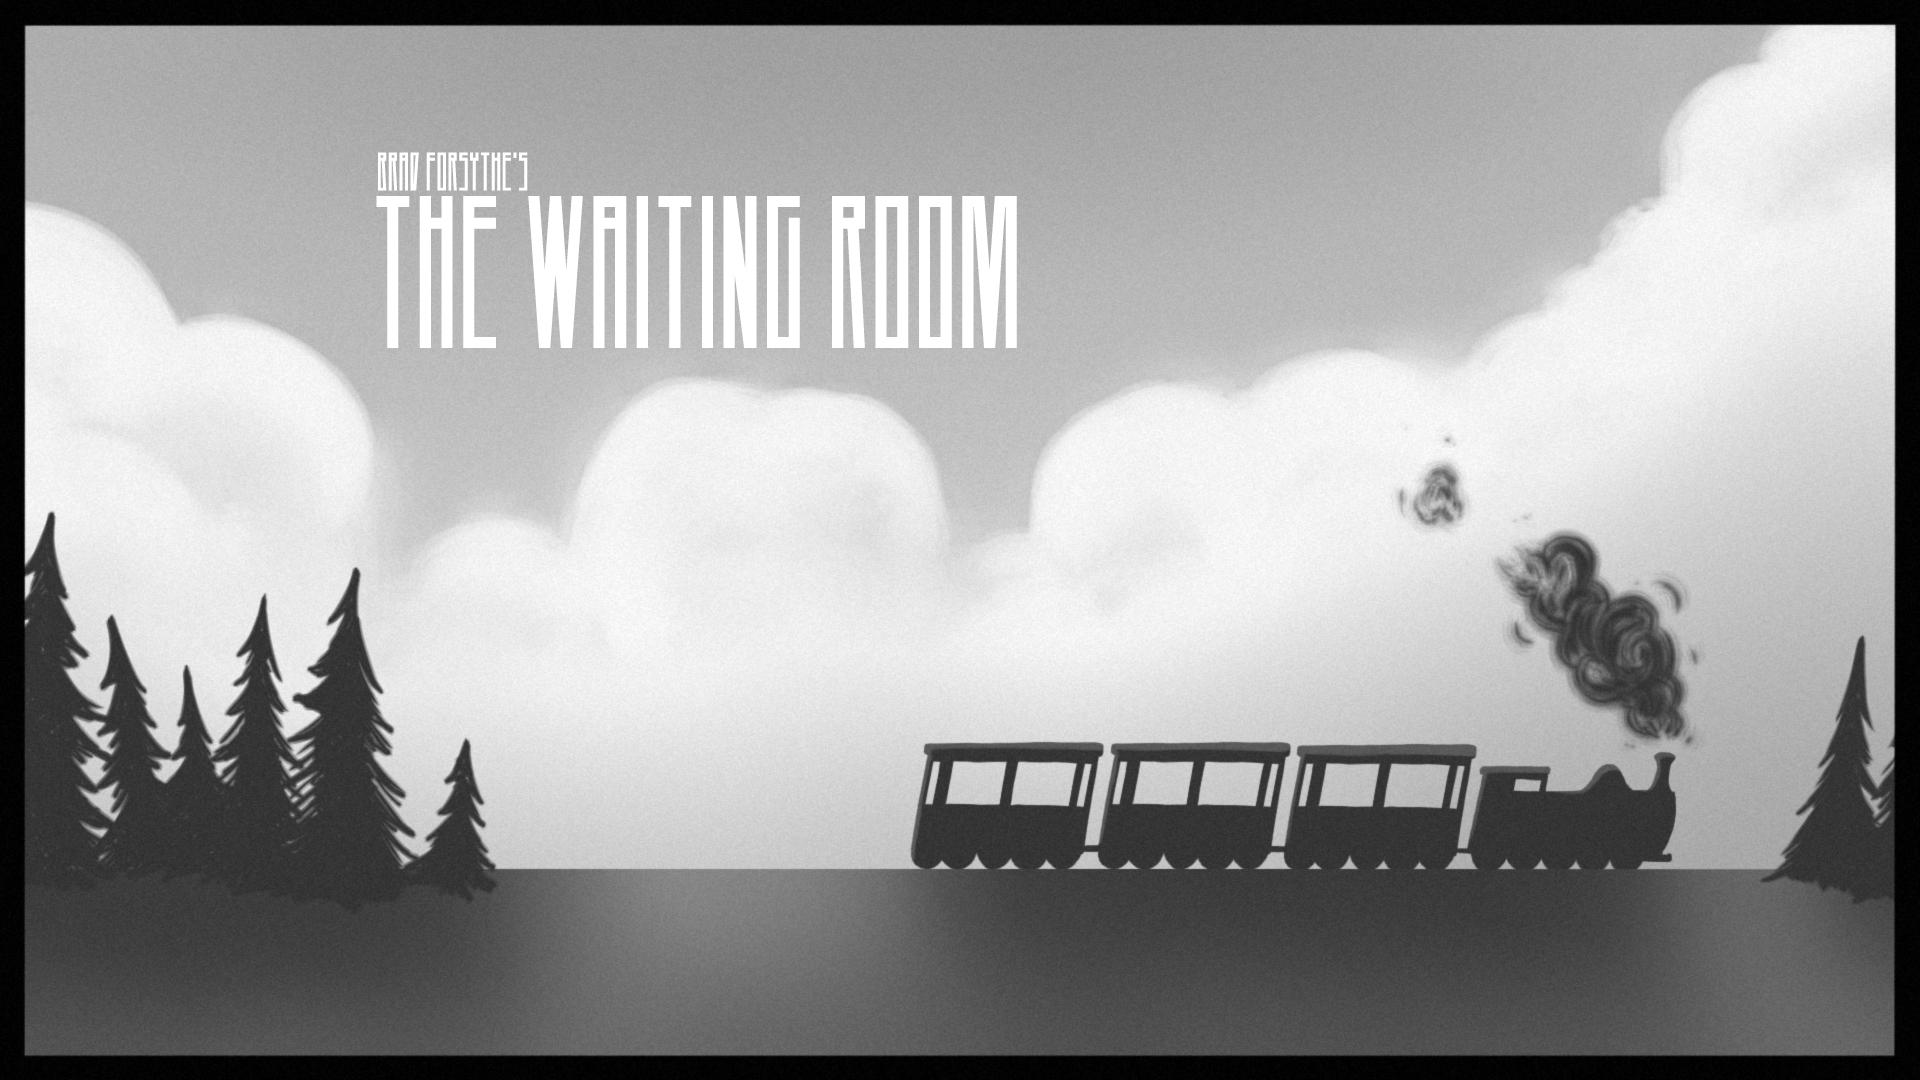 the-waiting-room-concept-art-digital-1920x1080-Need-iPhone-S-Plus-Background-for-I-wallpaper-wpc9009896